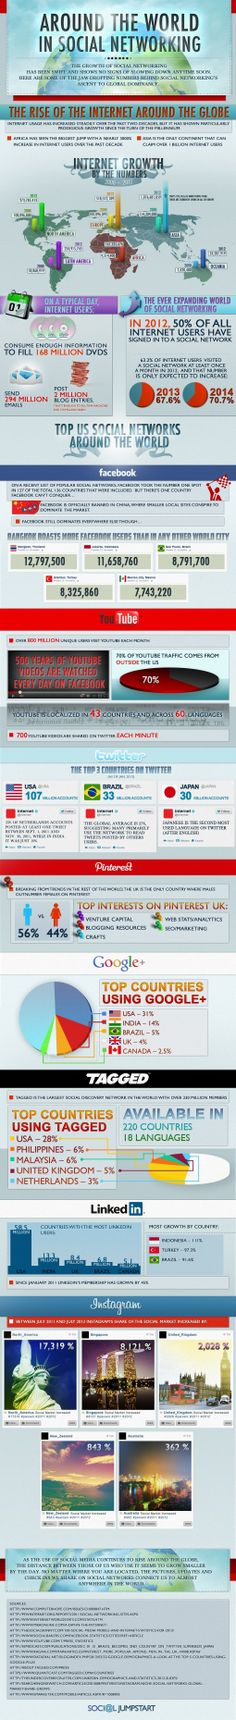 Social Media & Networking around the World - leaps forward in the last ten years.